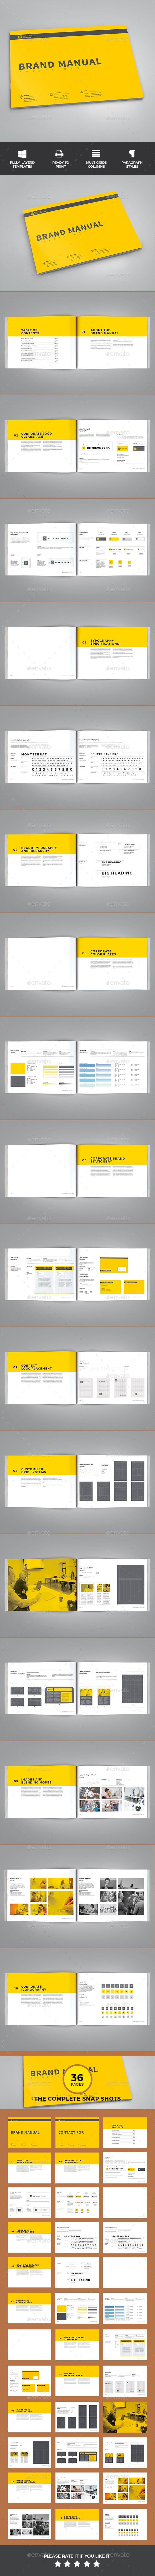 Brand Manual Template InDesign INDD 48 Pages A4 – It Manual Templates to Download